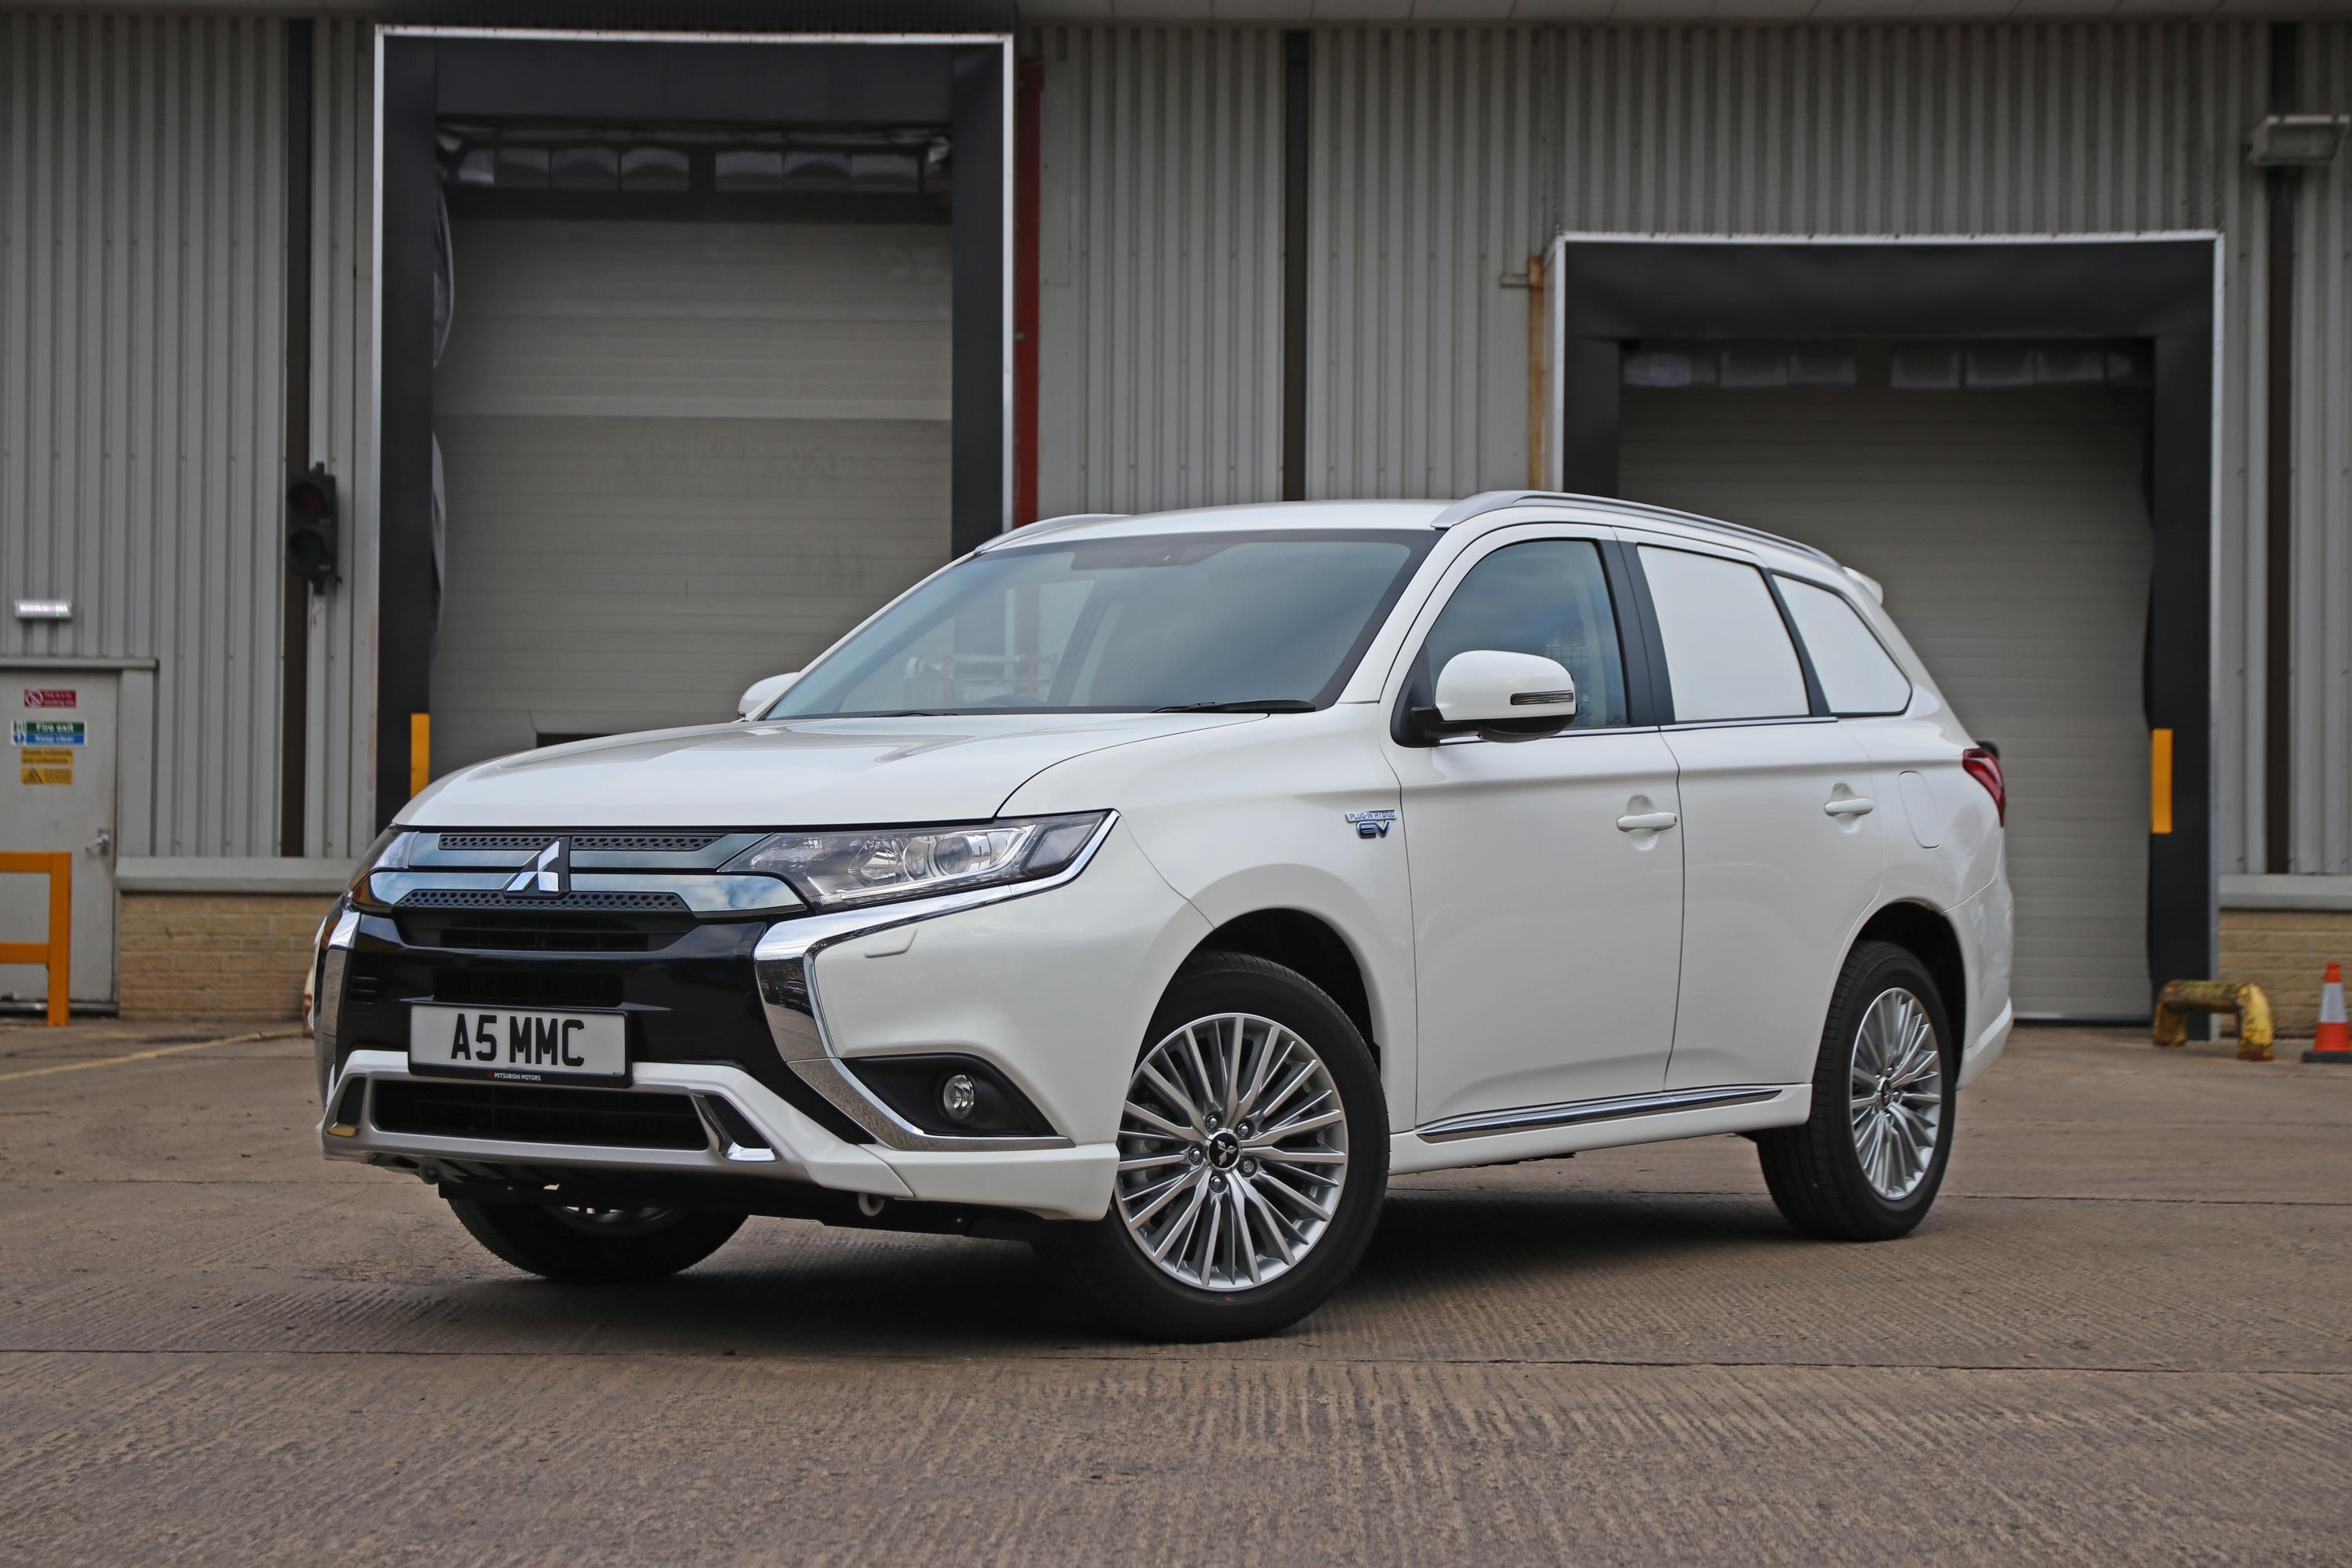 The British subdivision of Mitsubishi will soon reveal a new mass-produced commercial van based on its existing SUV model, the Outlander PHEV